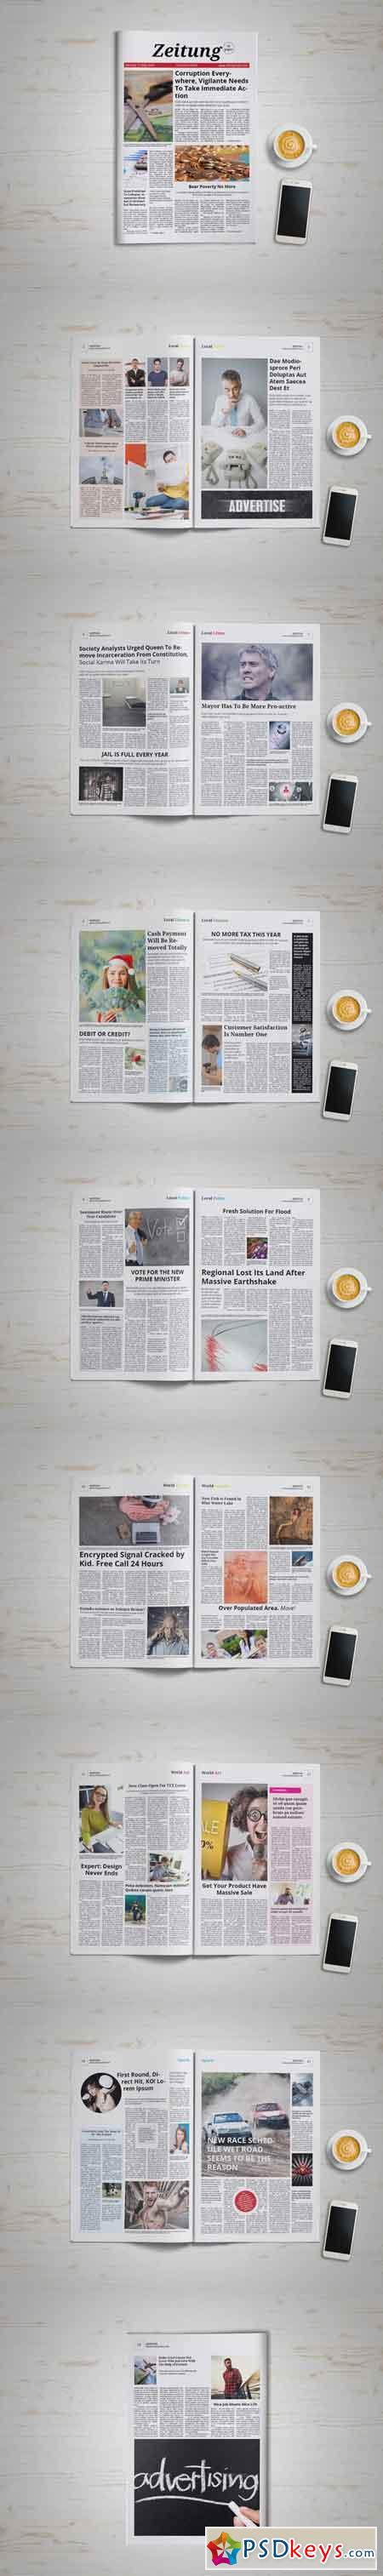 Zeitung Newspaper 671675 » Free Download Photoshop Vector Stock ...